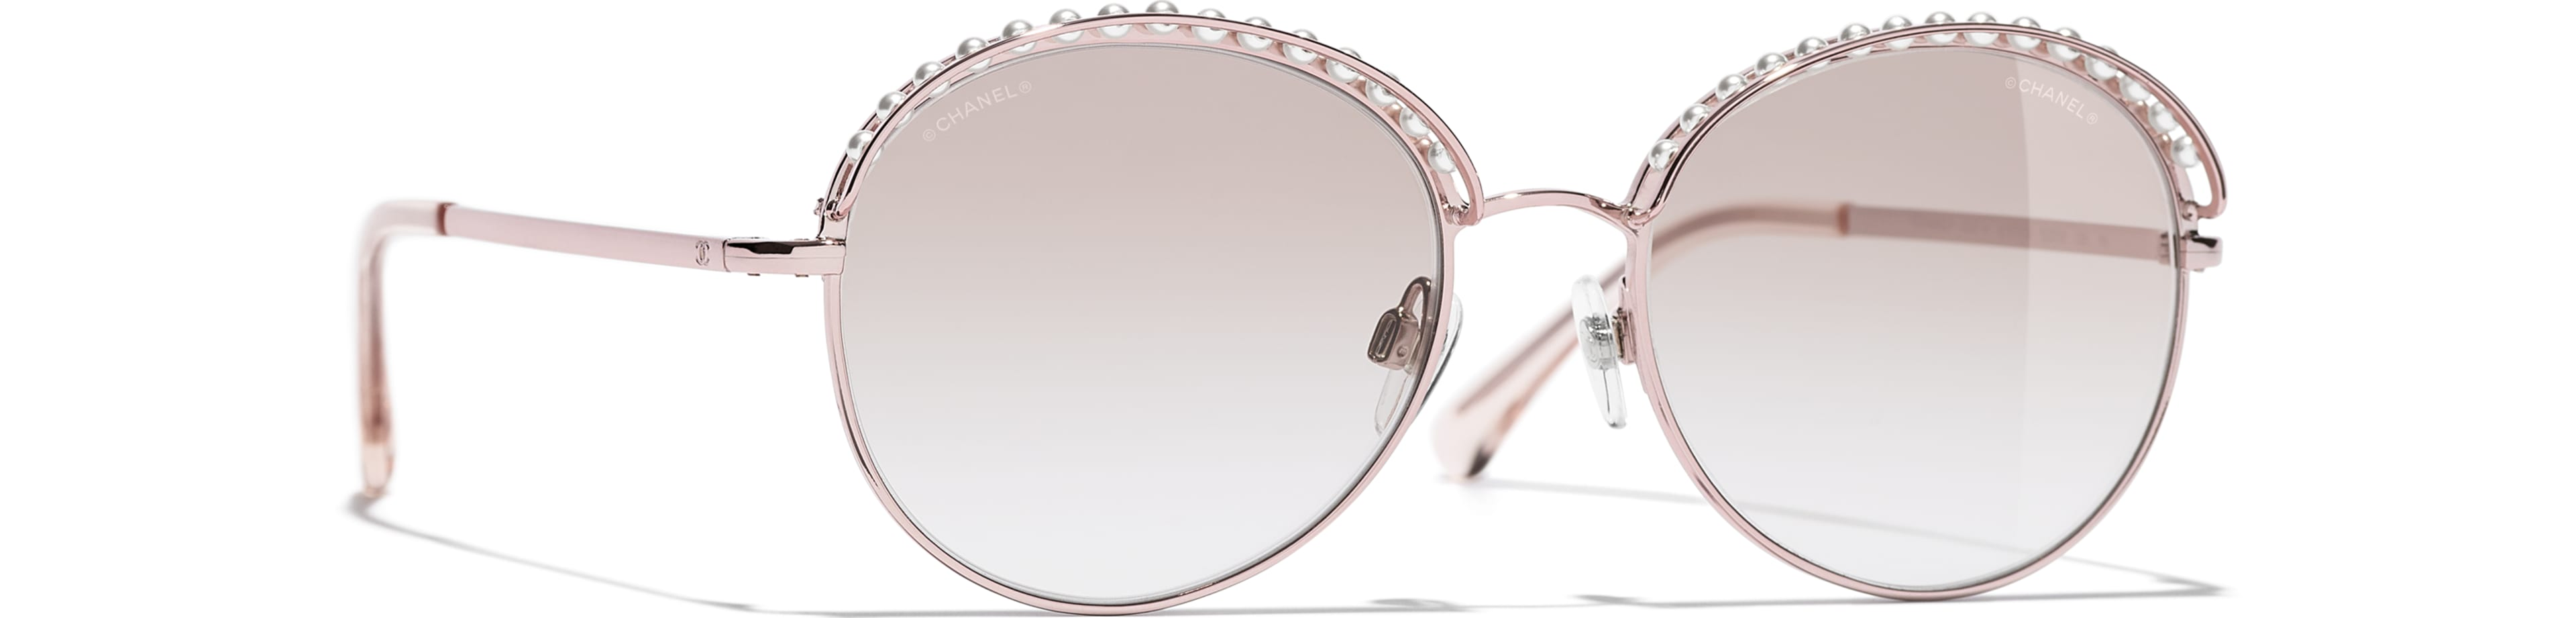 Metal & Imitation Pearls pinky gold frame. Pink gradient lenses